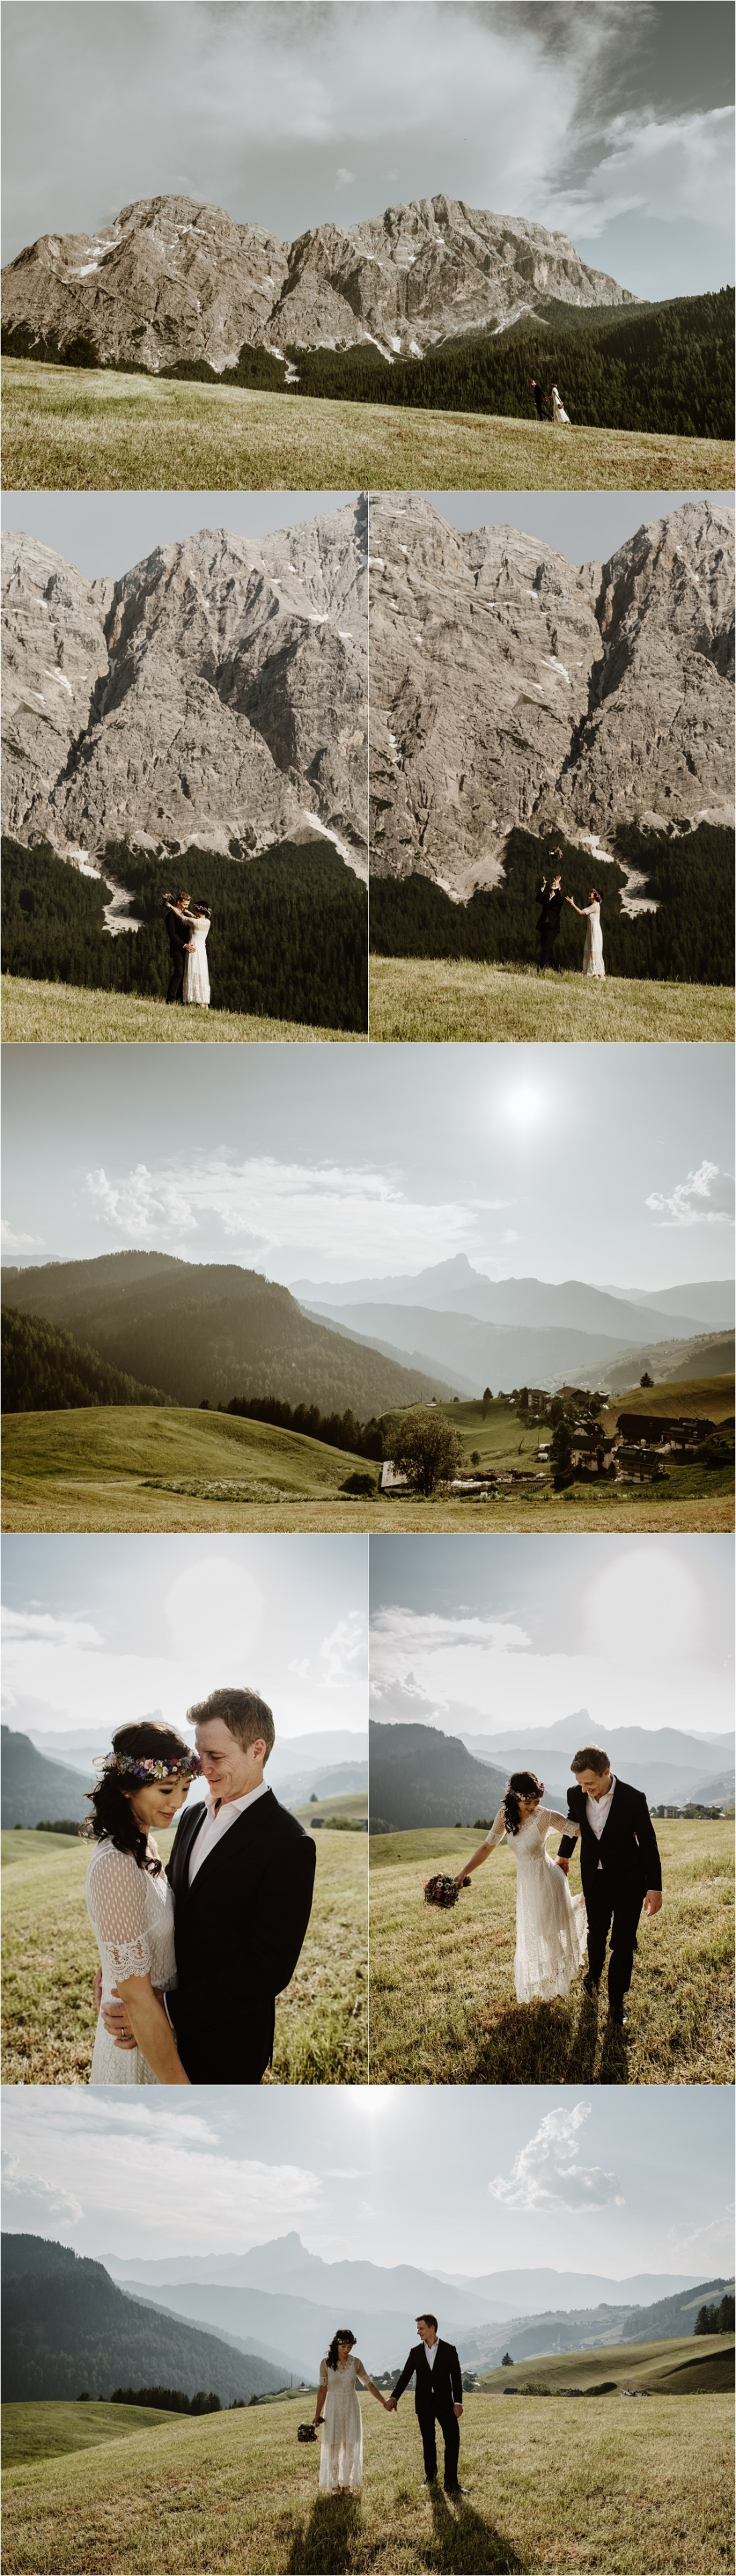 The bride and groom hike through an alpine meadow in the Dolomites. Photo by Wild Connections Photography